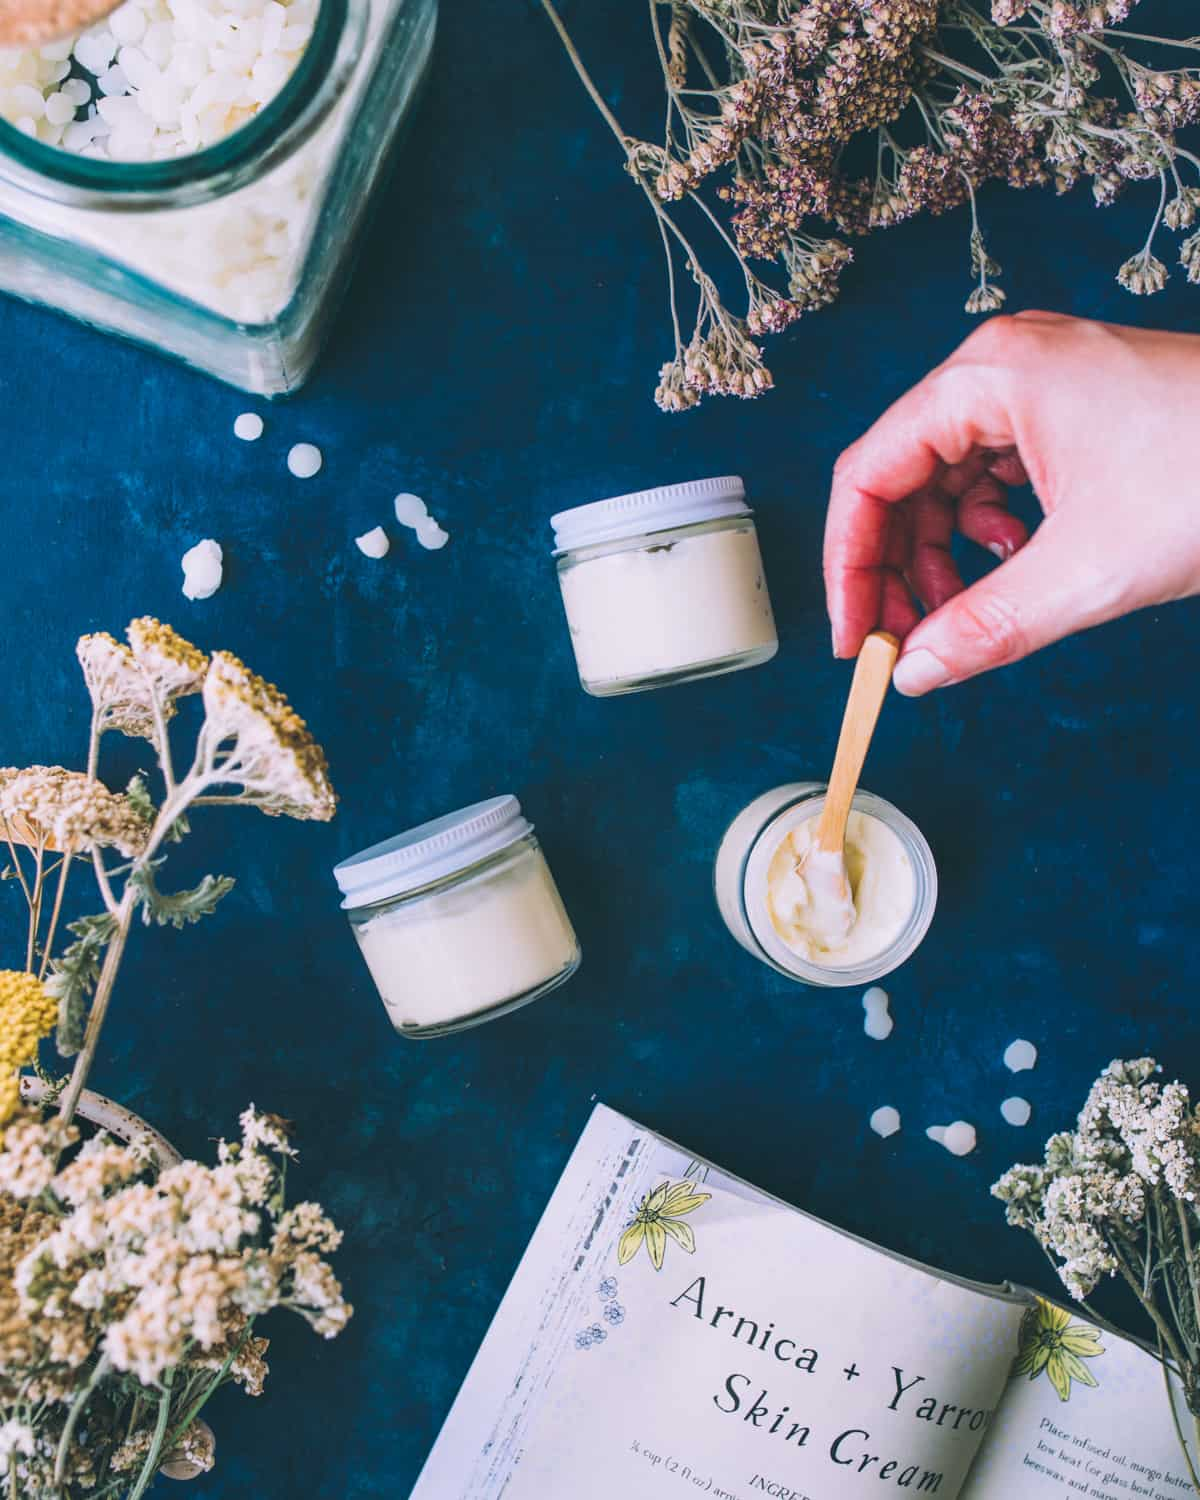 2 jars resting on their sides filled with the cream, and one open top view with a hand stirring the arnica and yarrow cream with a tiny wooden spoon. On a navy blue countertop surrounded by the recipe book and dried yarrow flowers.